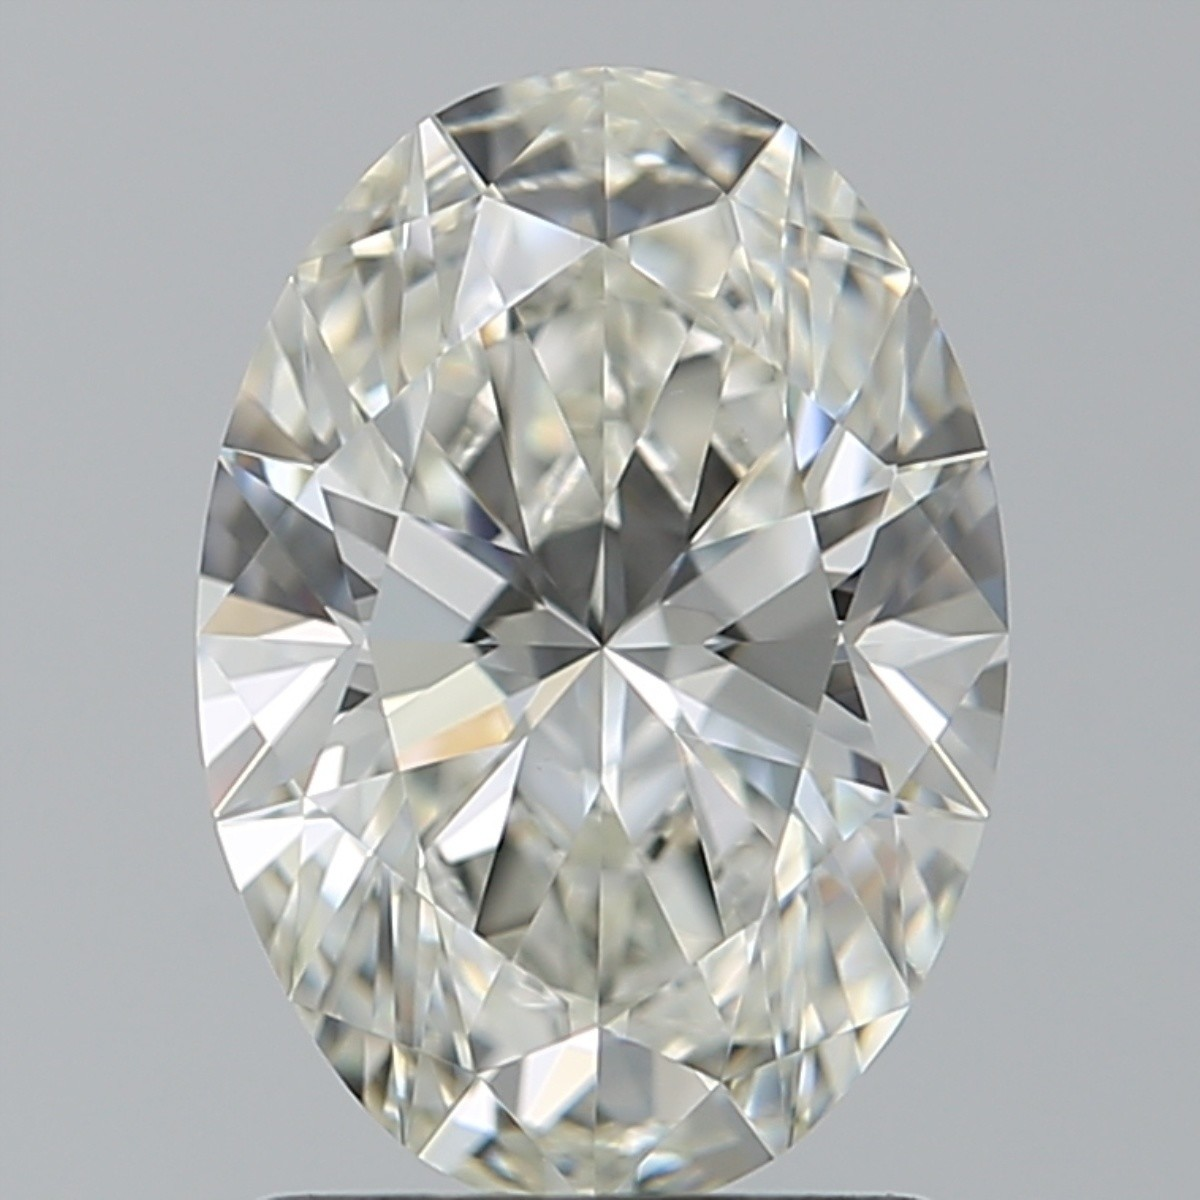 1.51 Carat Oval Diamond (H/VS1)